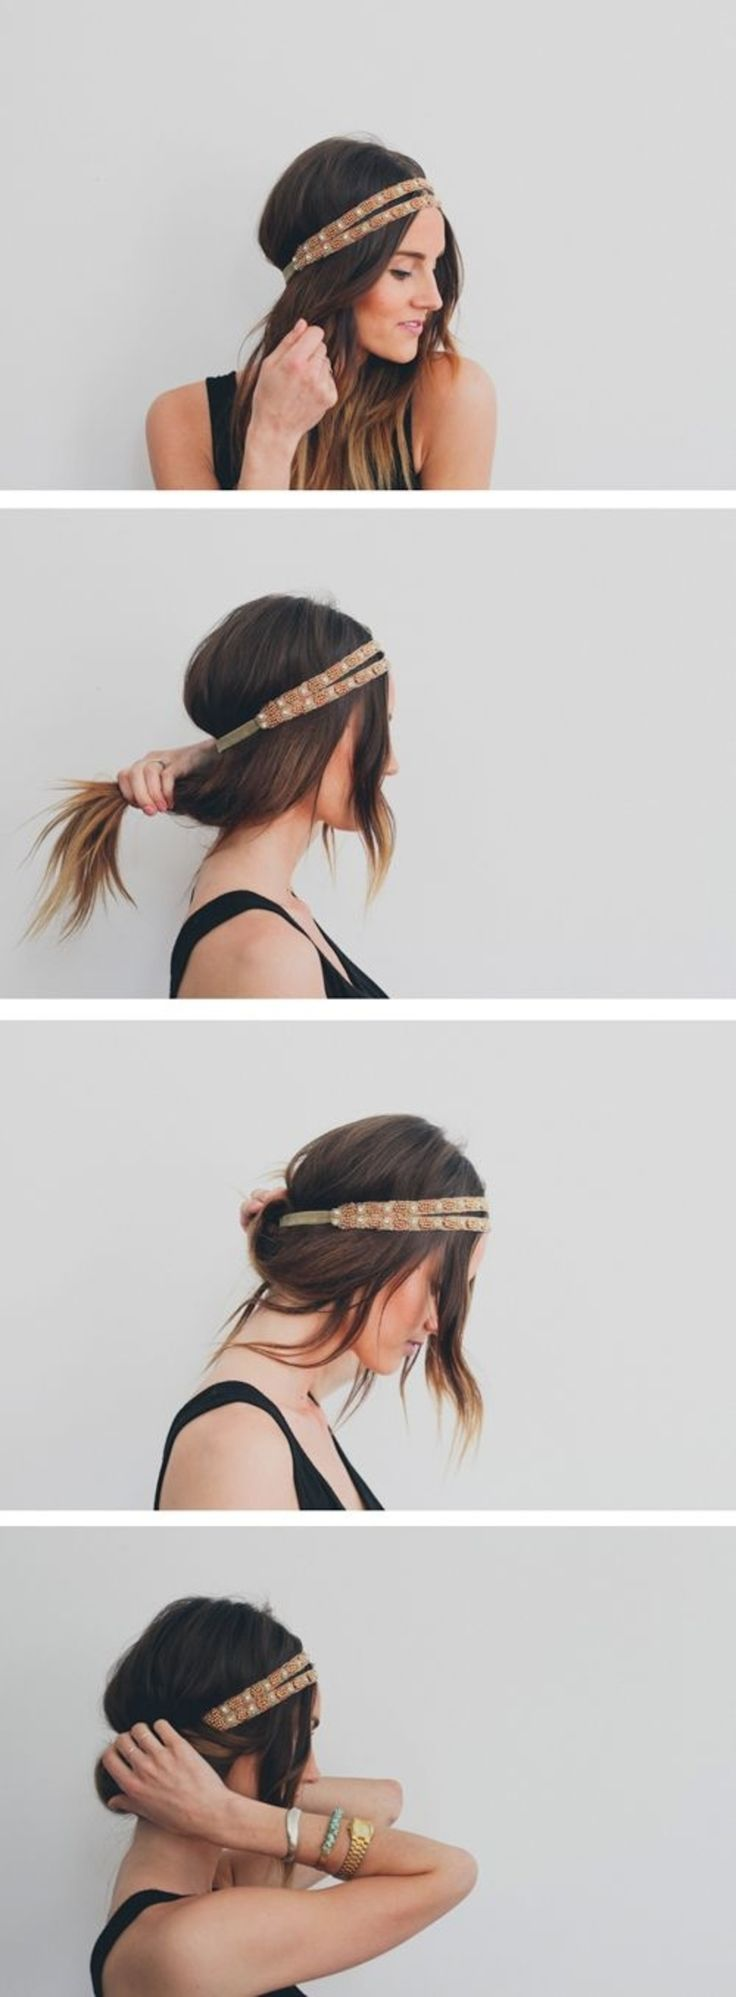 #Summer Hair: Keep Your Cool with These Updos ...